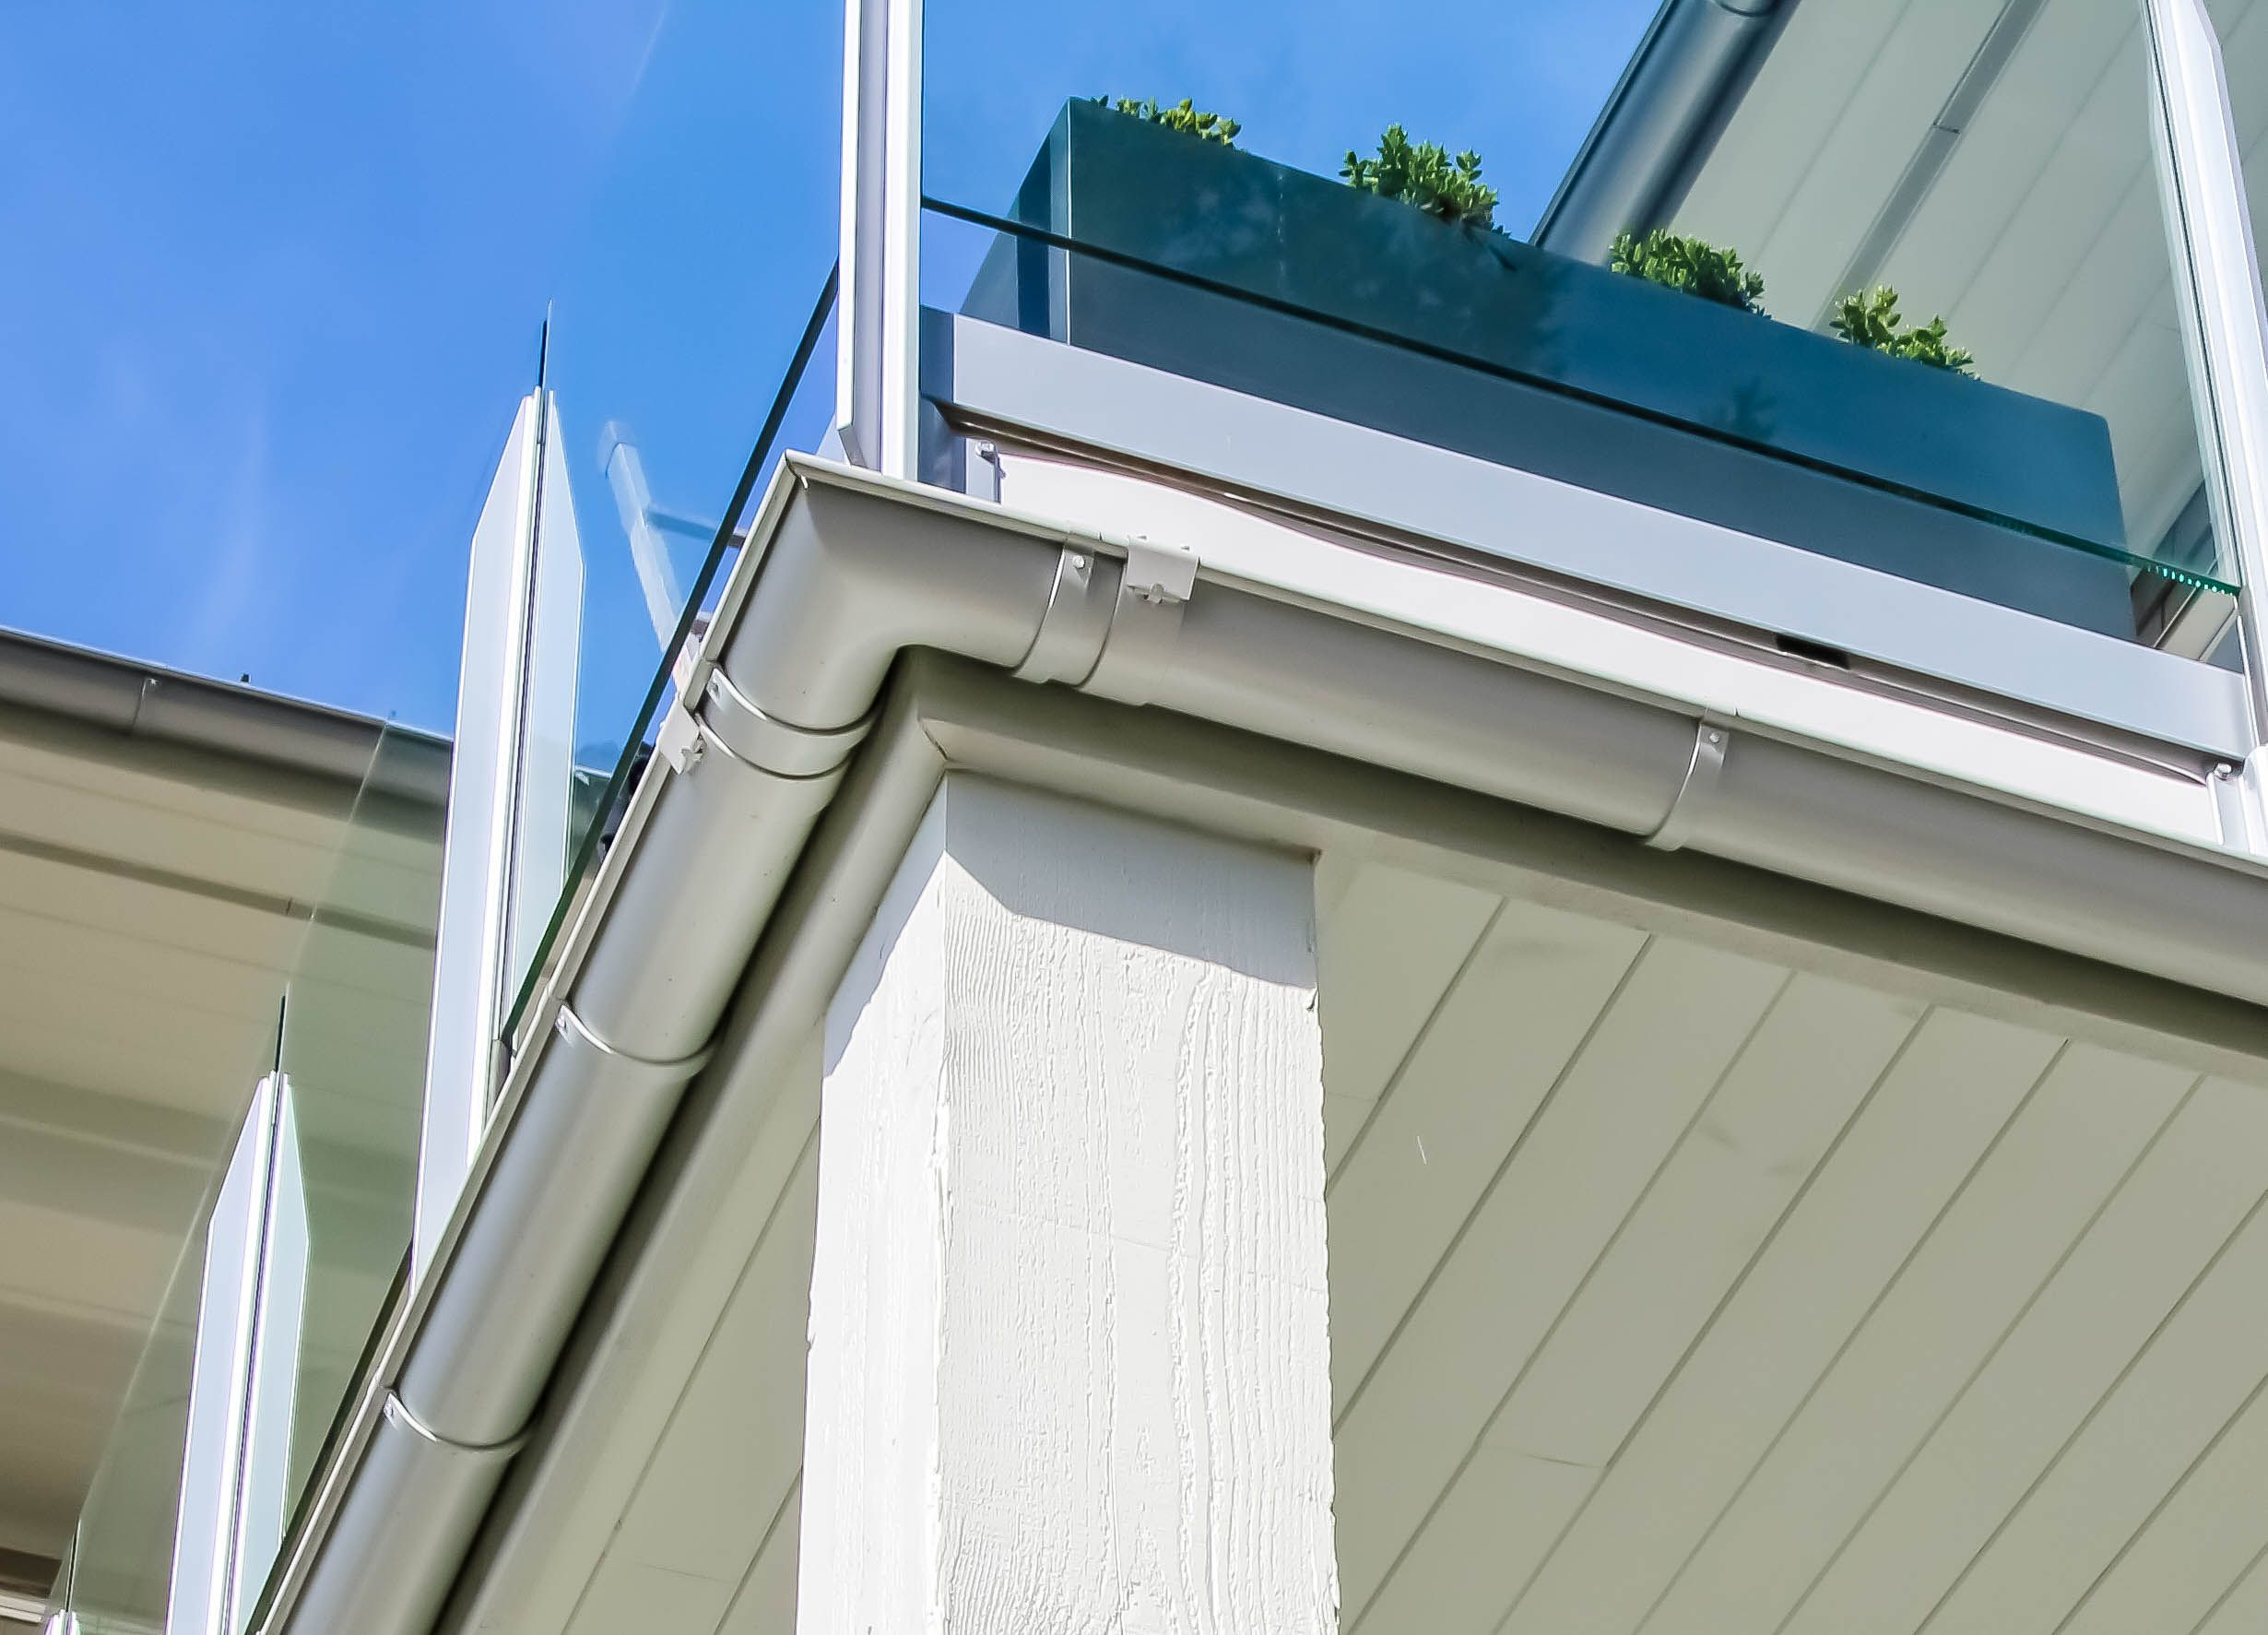 Ideally It Helps To Have Your Gutters Blend In Subtly Seamlessly With Your Home S Siding In Most Cases It May Be B Gutters Gutter Accessories Rain Gutters